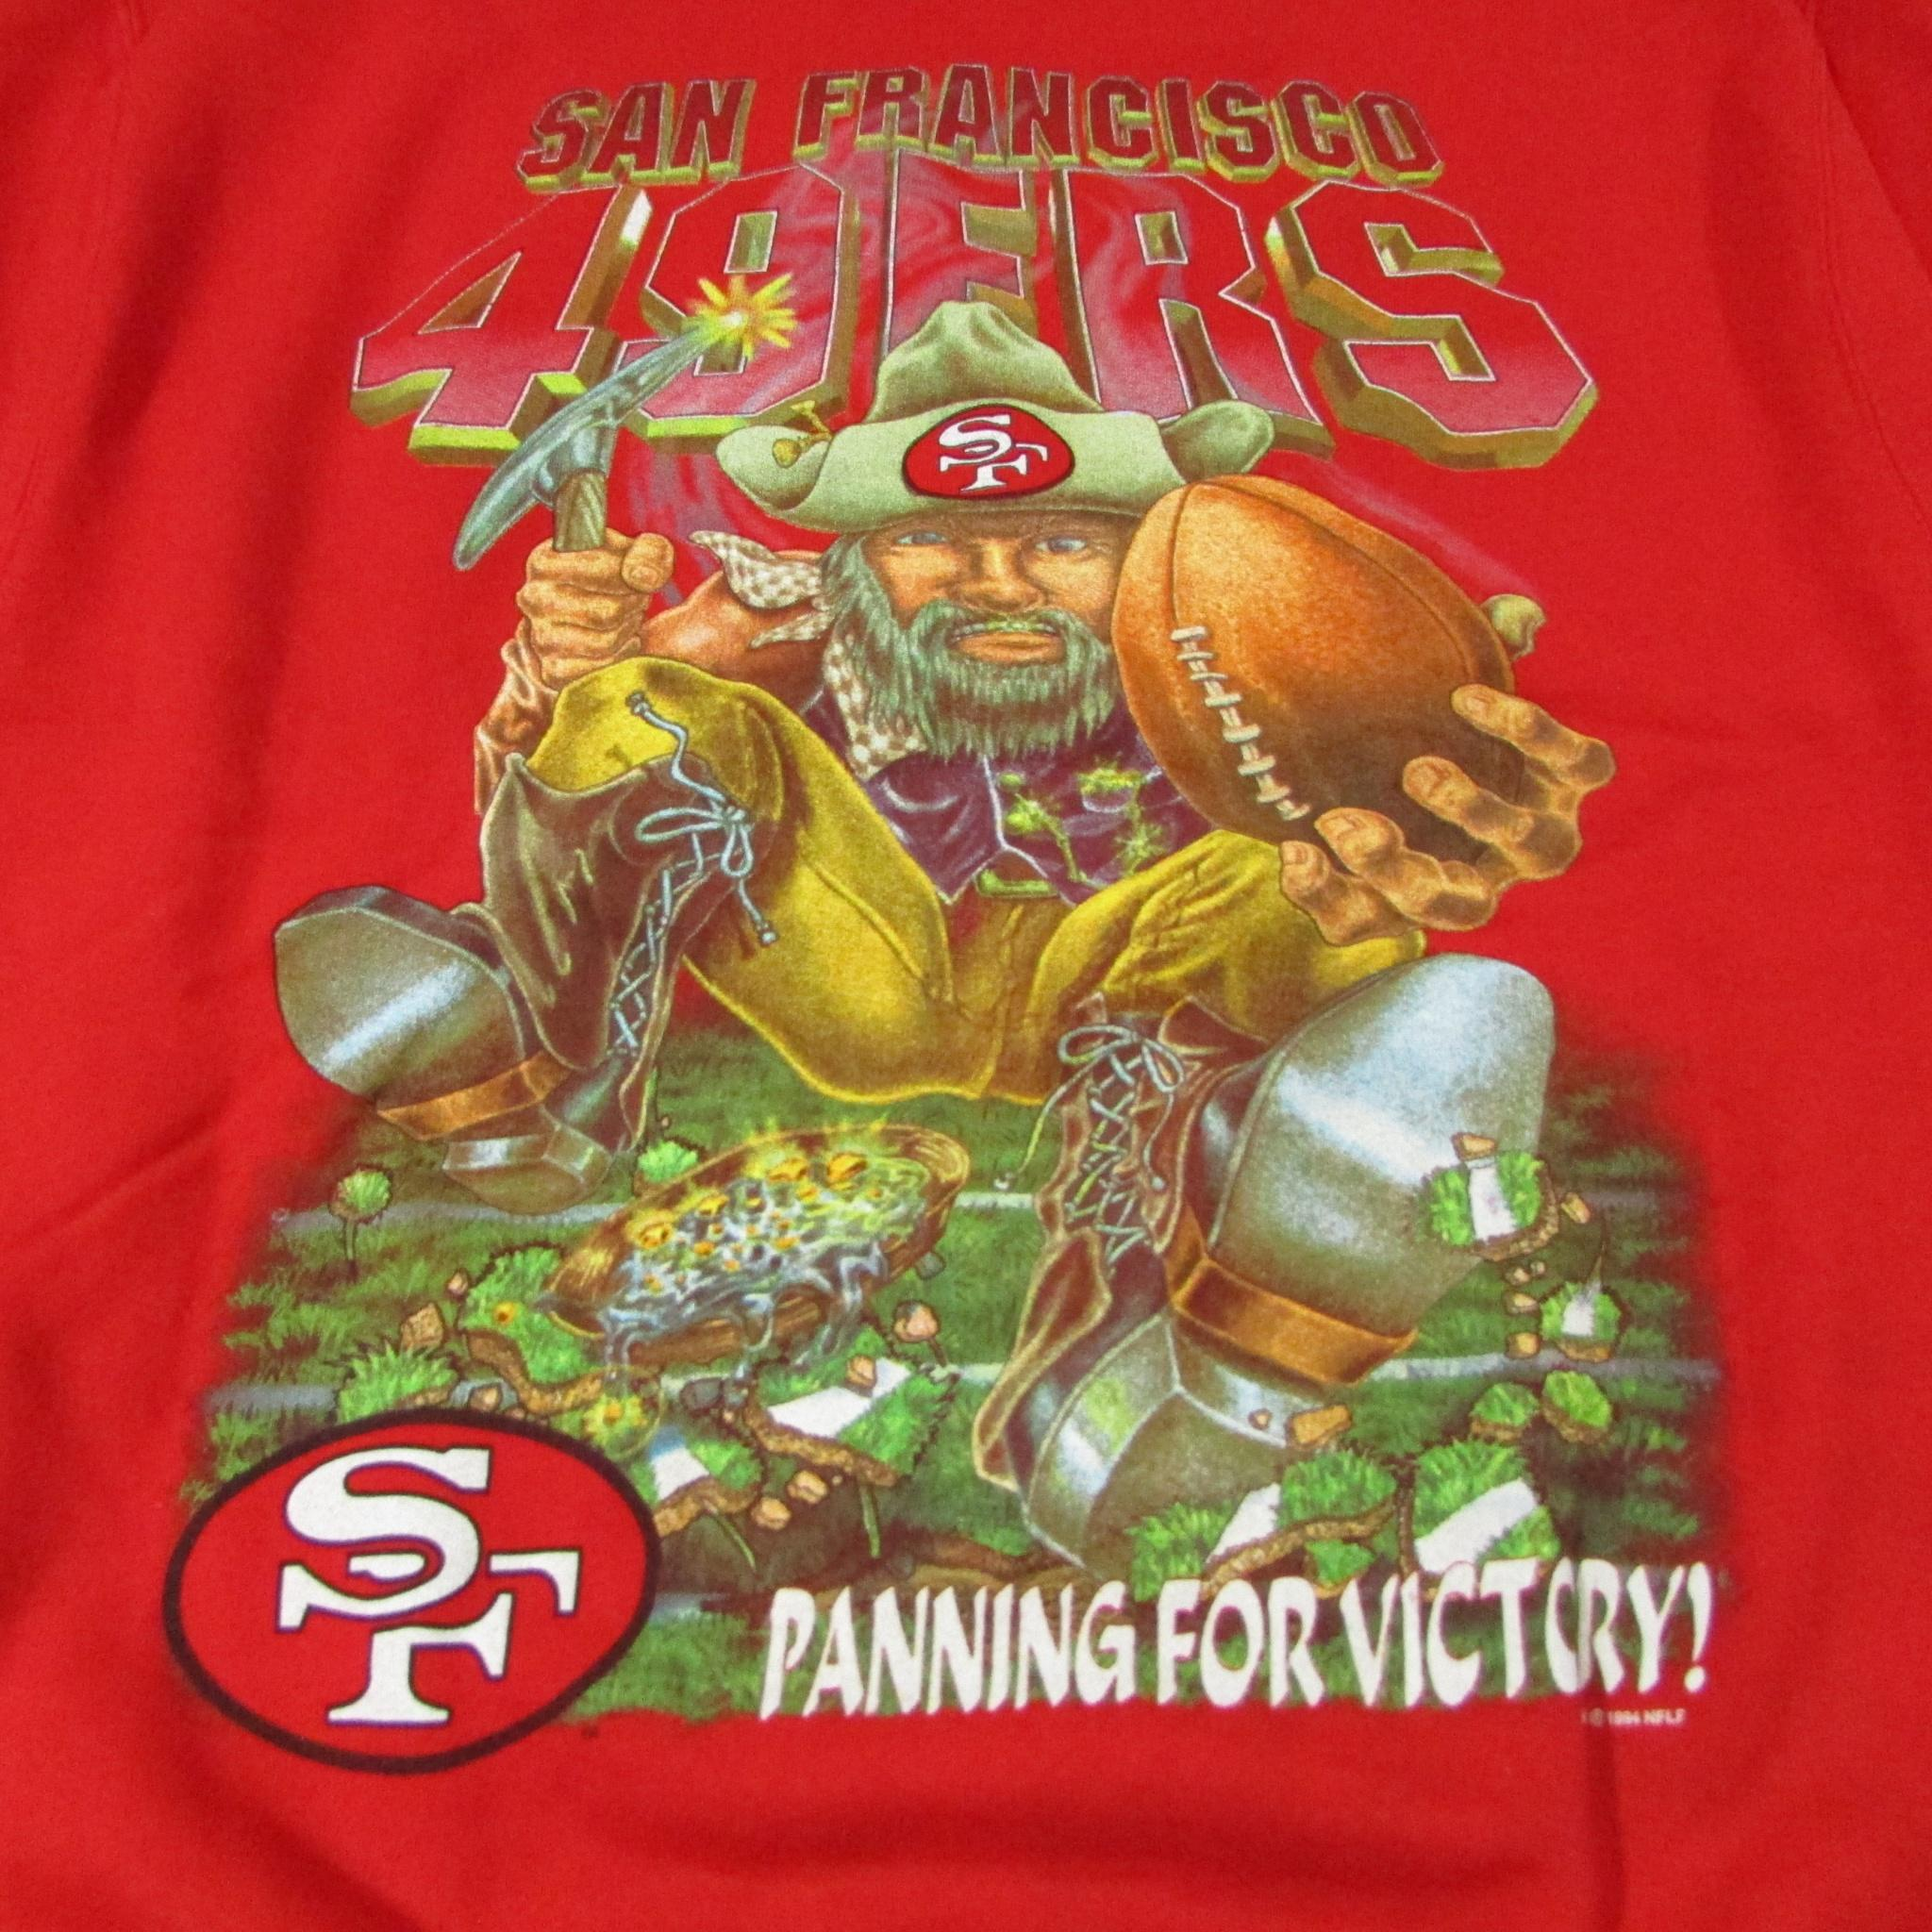 San Francisco 49ers Gold Rush Panning for Victory Vintage Football Sweater Sz XL